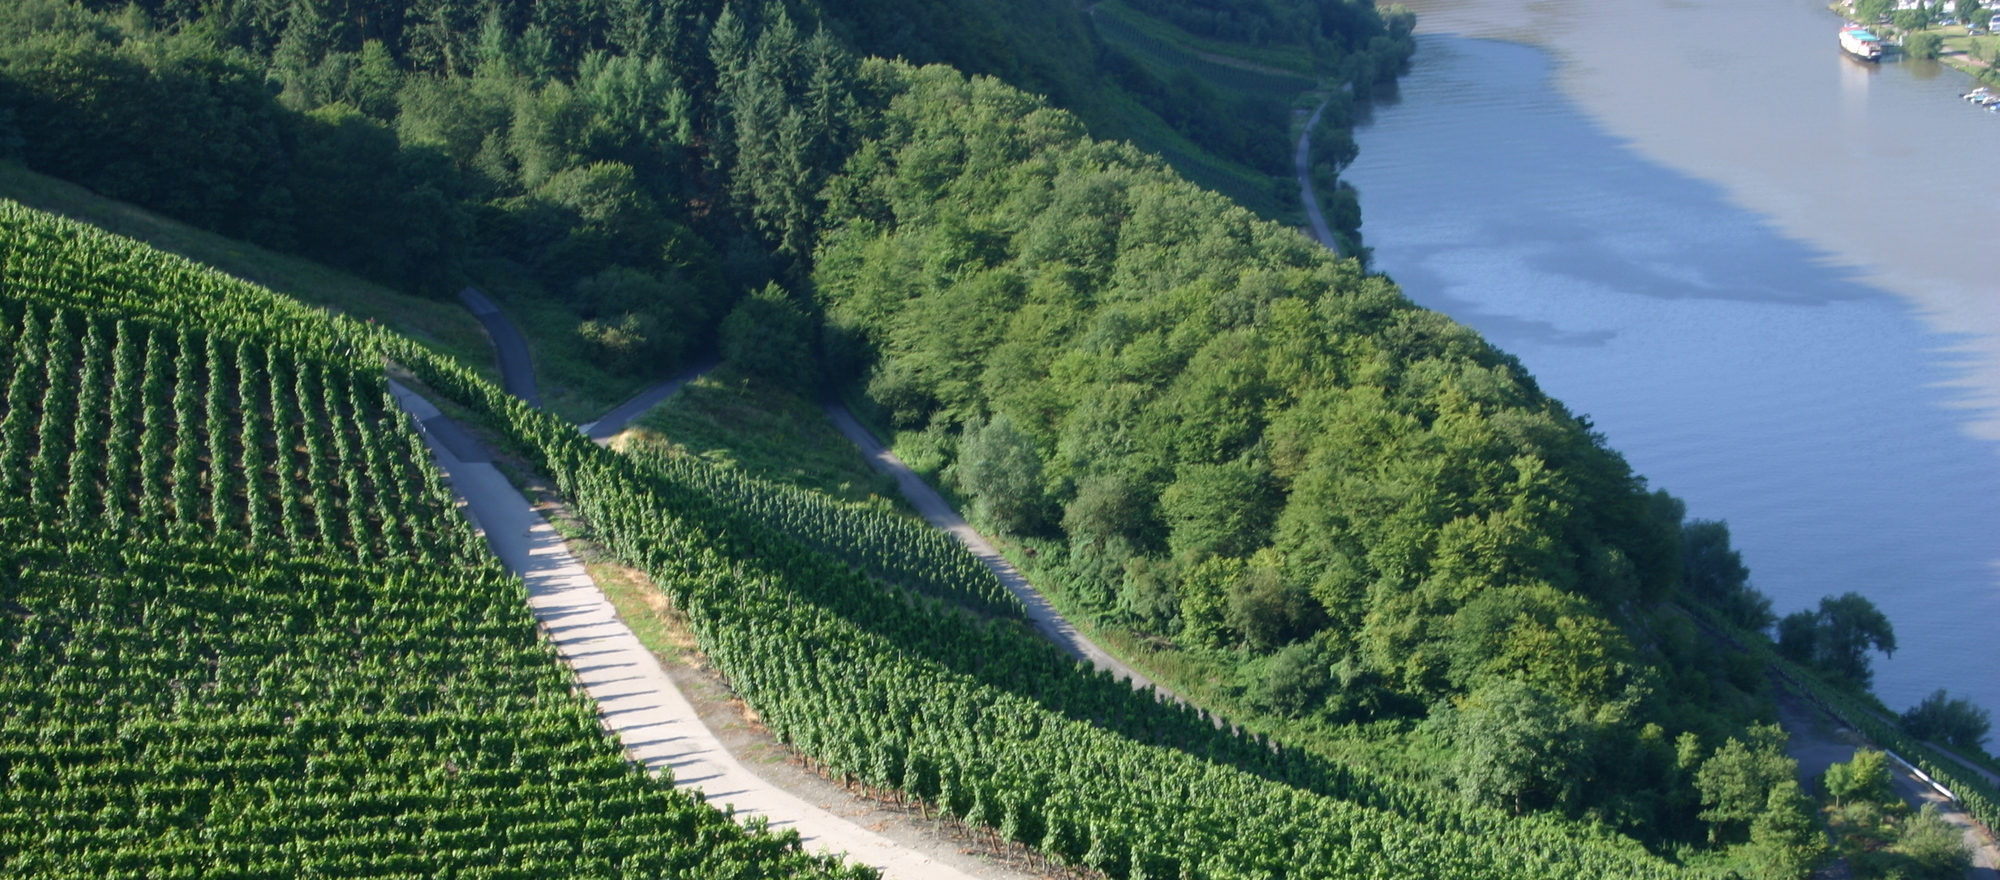 Grapes are grown, at the 3-star-superior hotel Ringhotel Boemers Moselland in Alf/Mosel